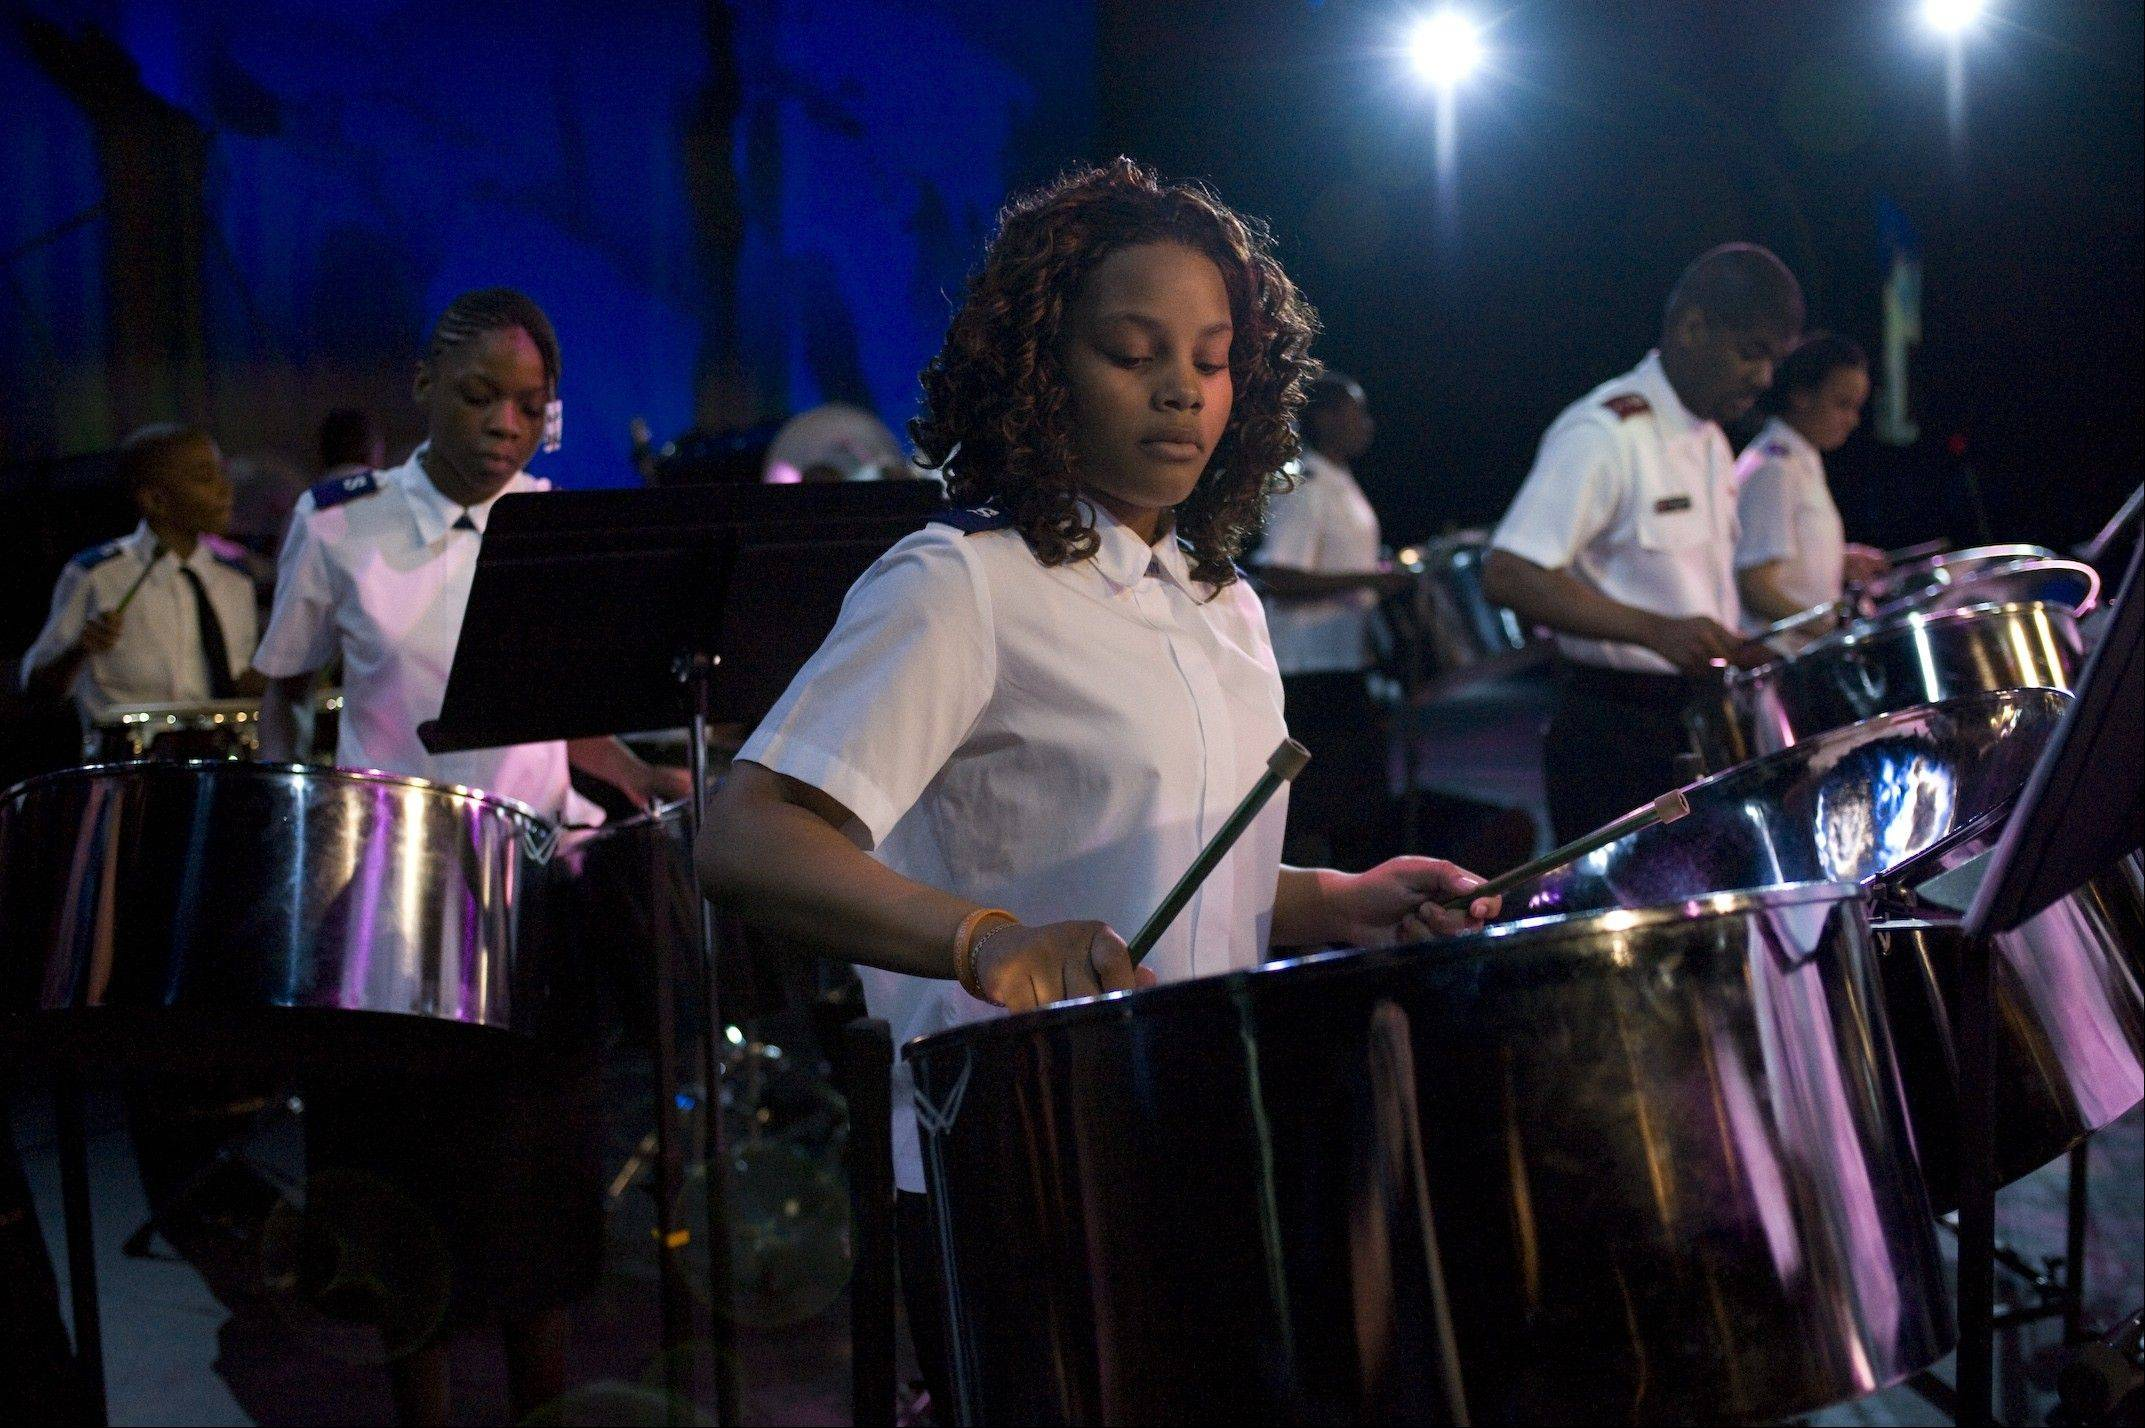 The Salvation Story Steel Orchestra is part of an outreach program sponsored by the Salvation Army in Chicago's Englewood neighborhood.